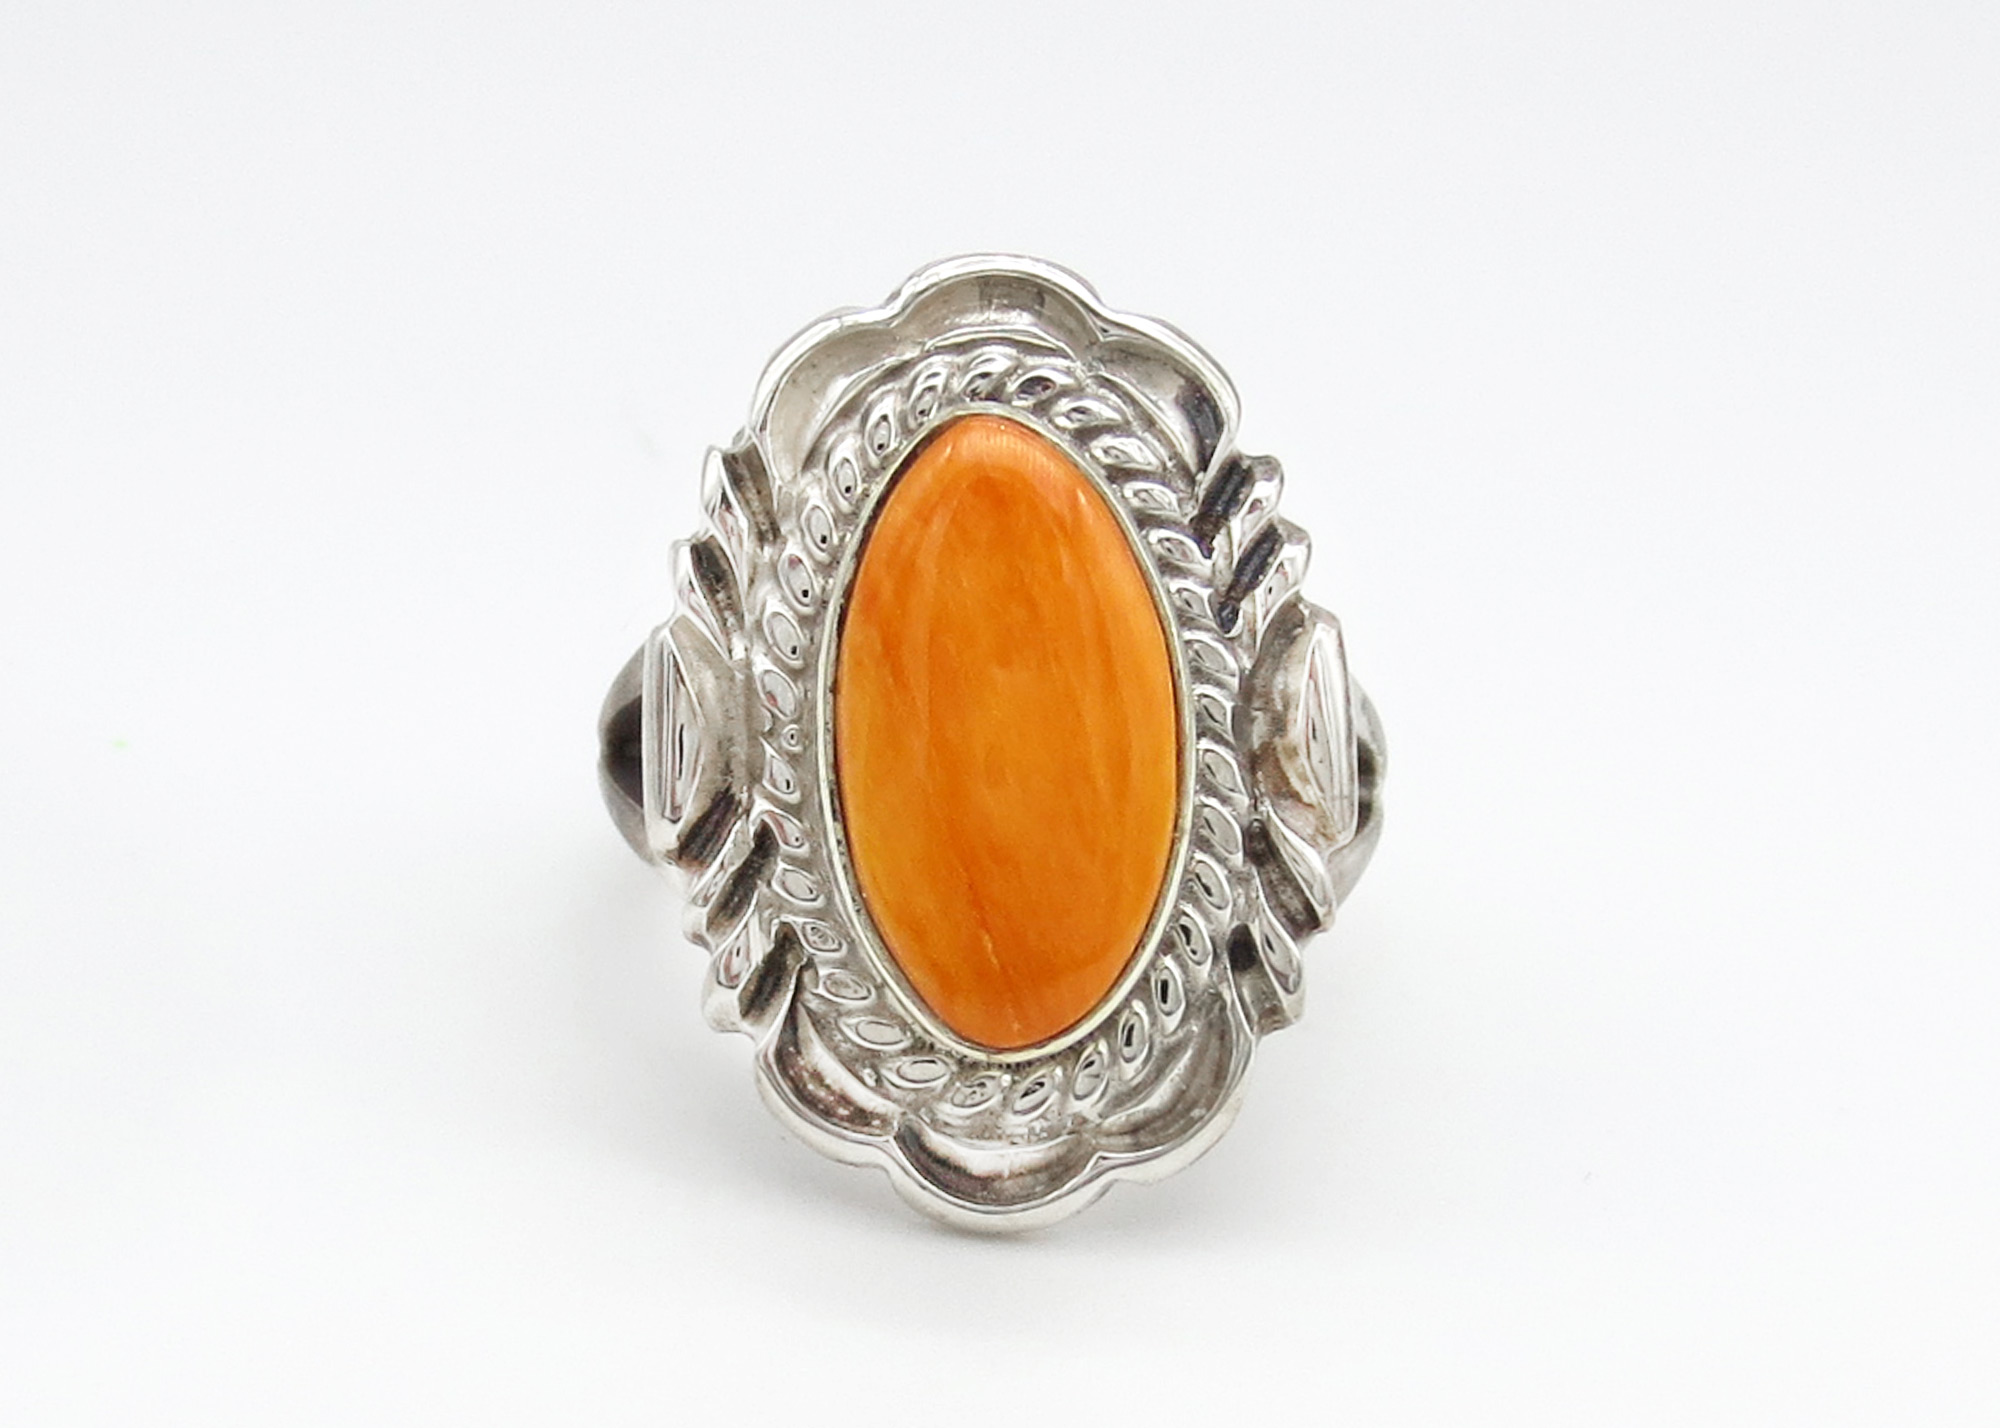 Orange Spiny Oyster & Sterling Silver Ring Sz 7 Navajo Jewelry - 3946rio